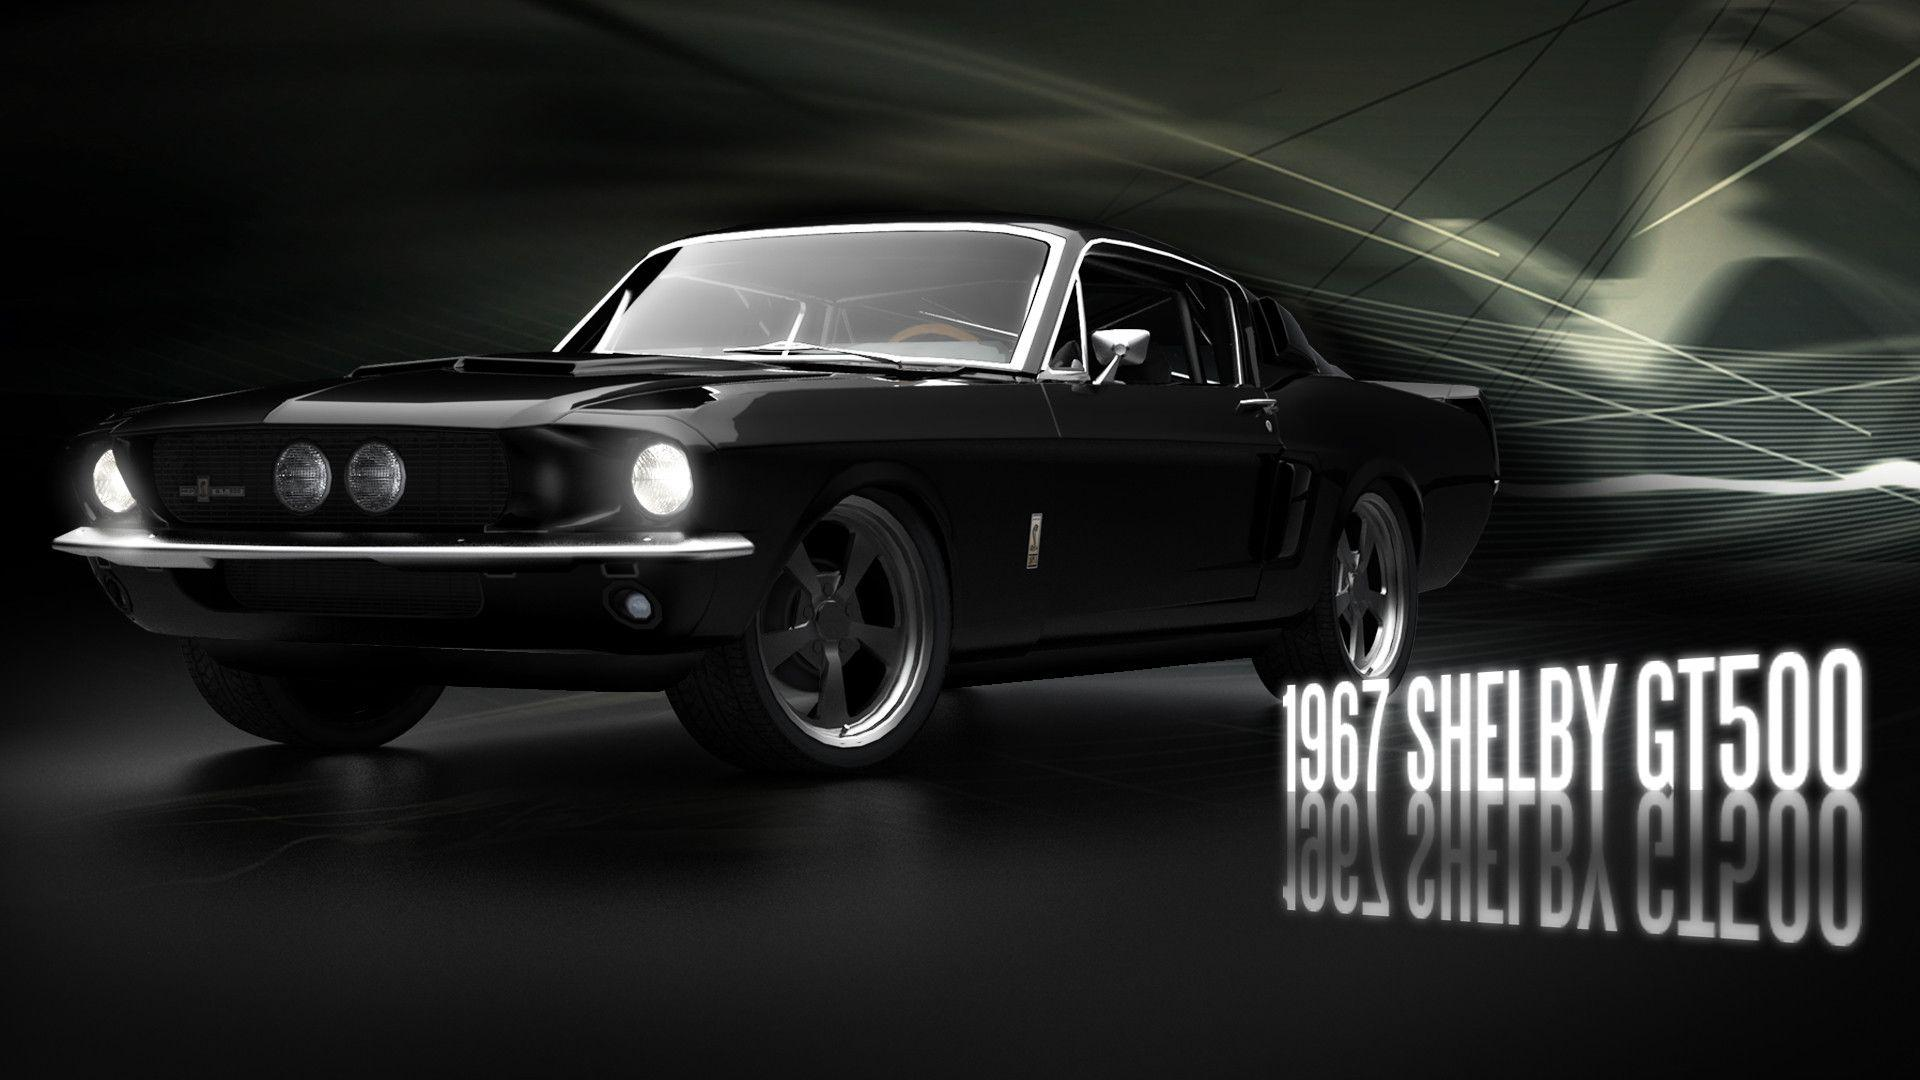 1967 shelby gt500 wallpapers